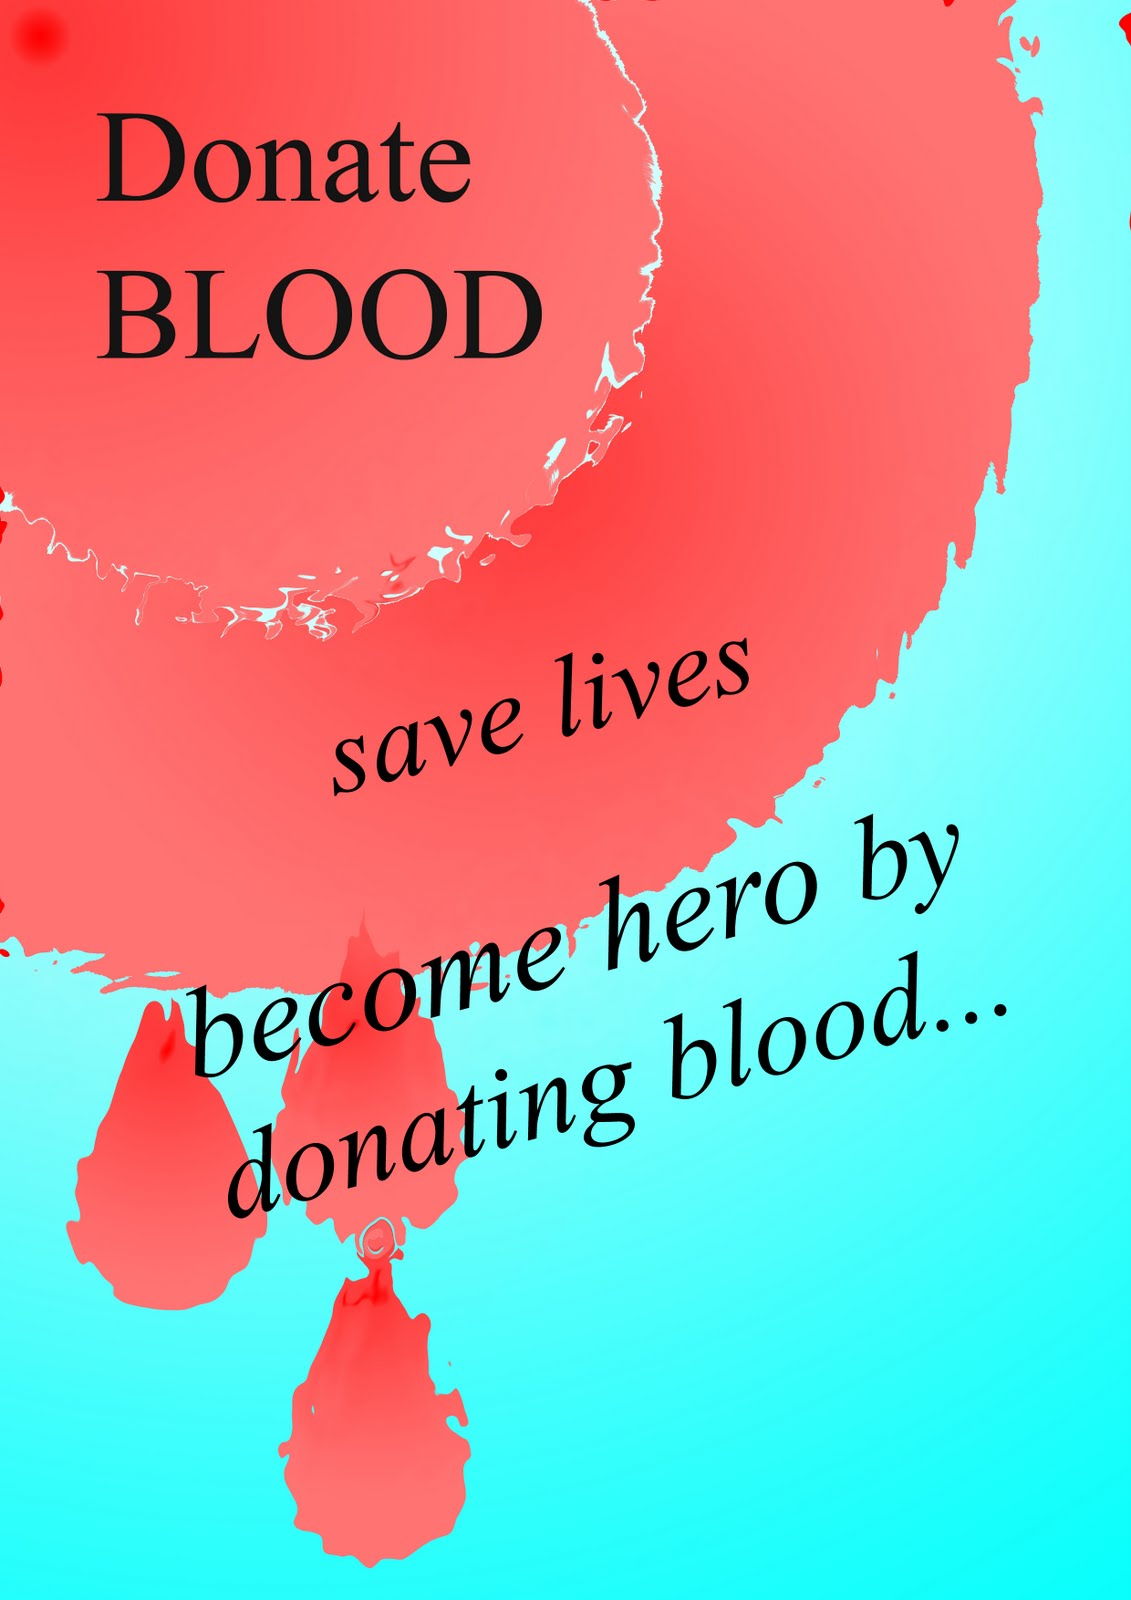 Are you complaining donate blood save life donate blood save life altavistaventures Image collections